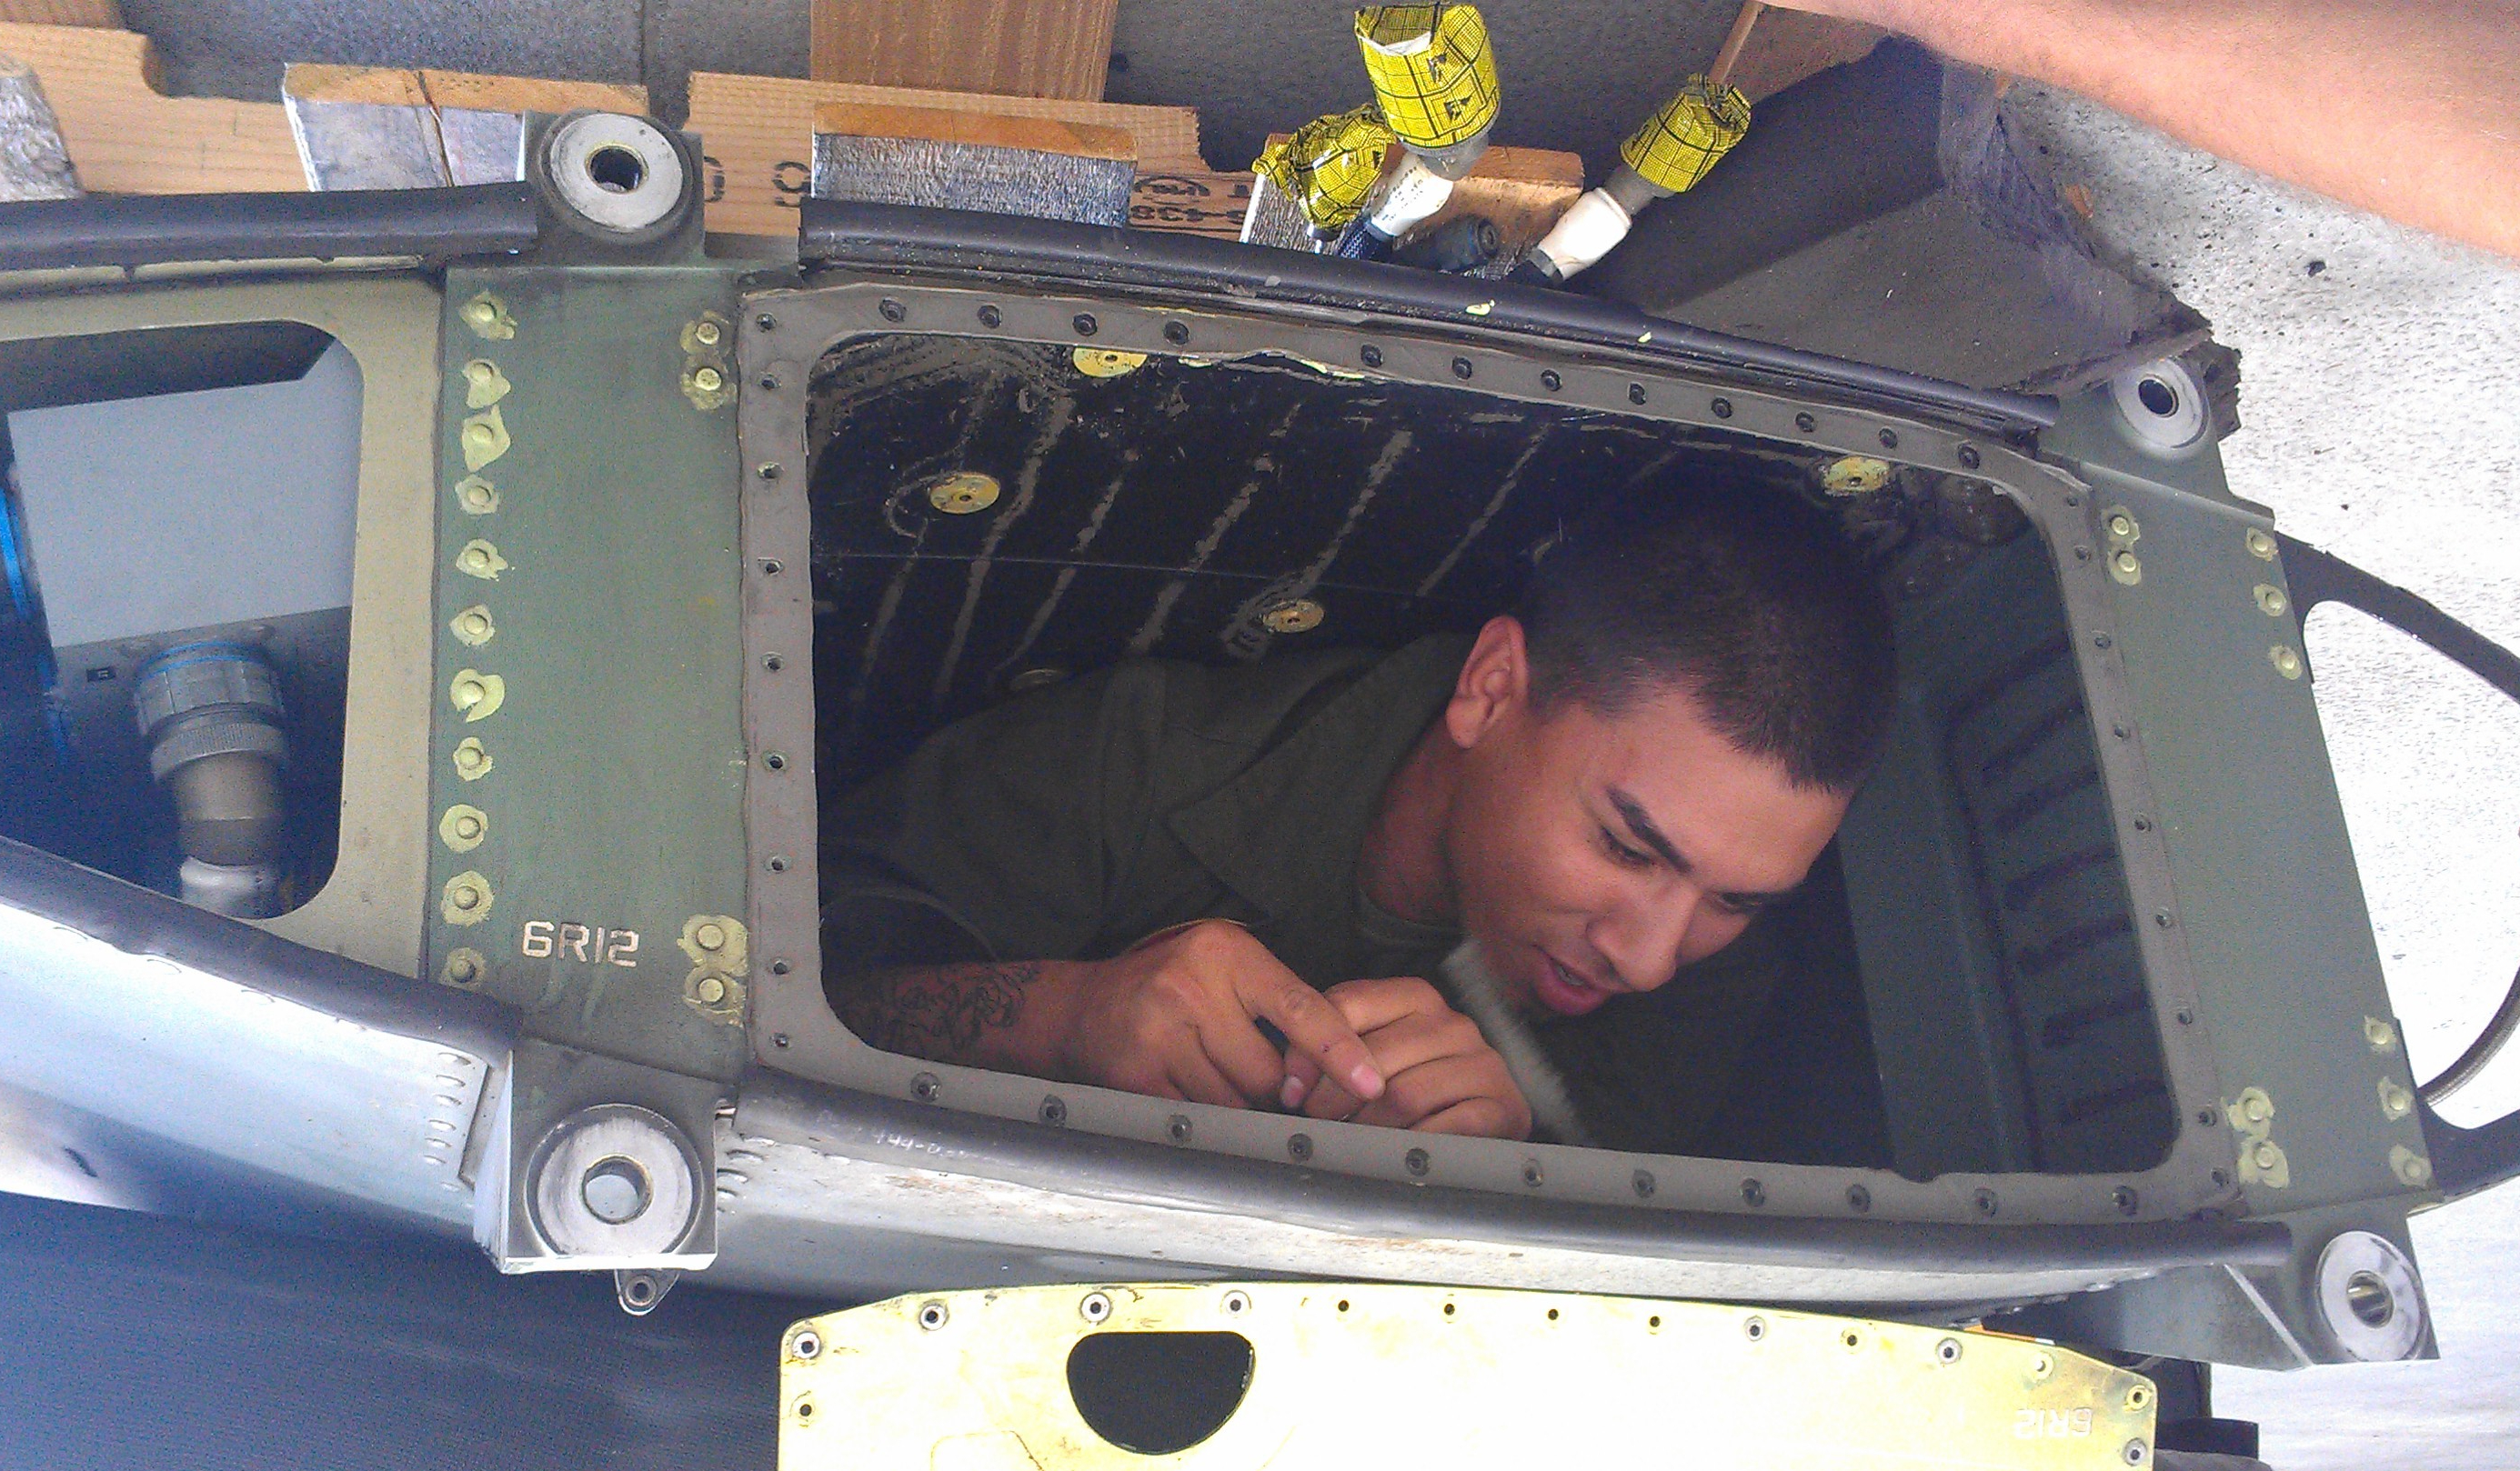 Jesus working maintenance on helicopter.